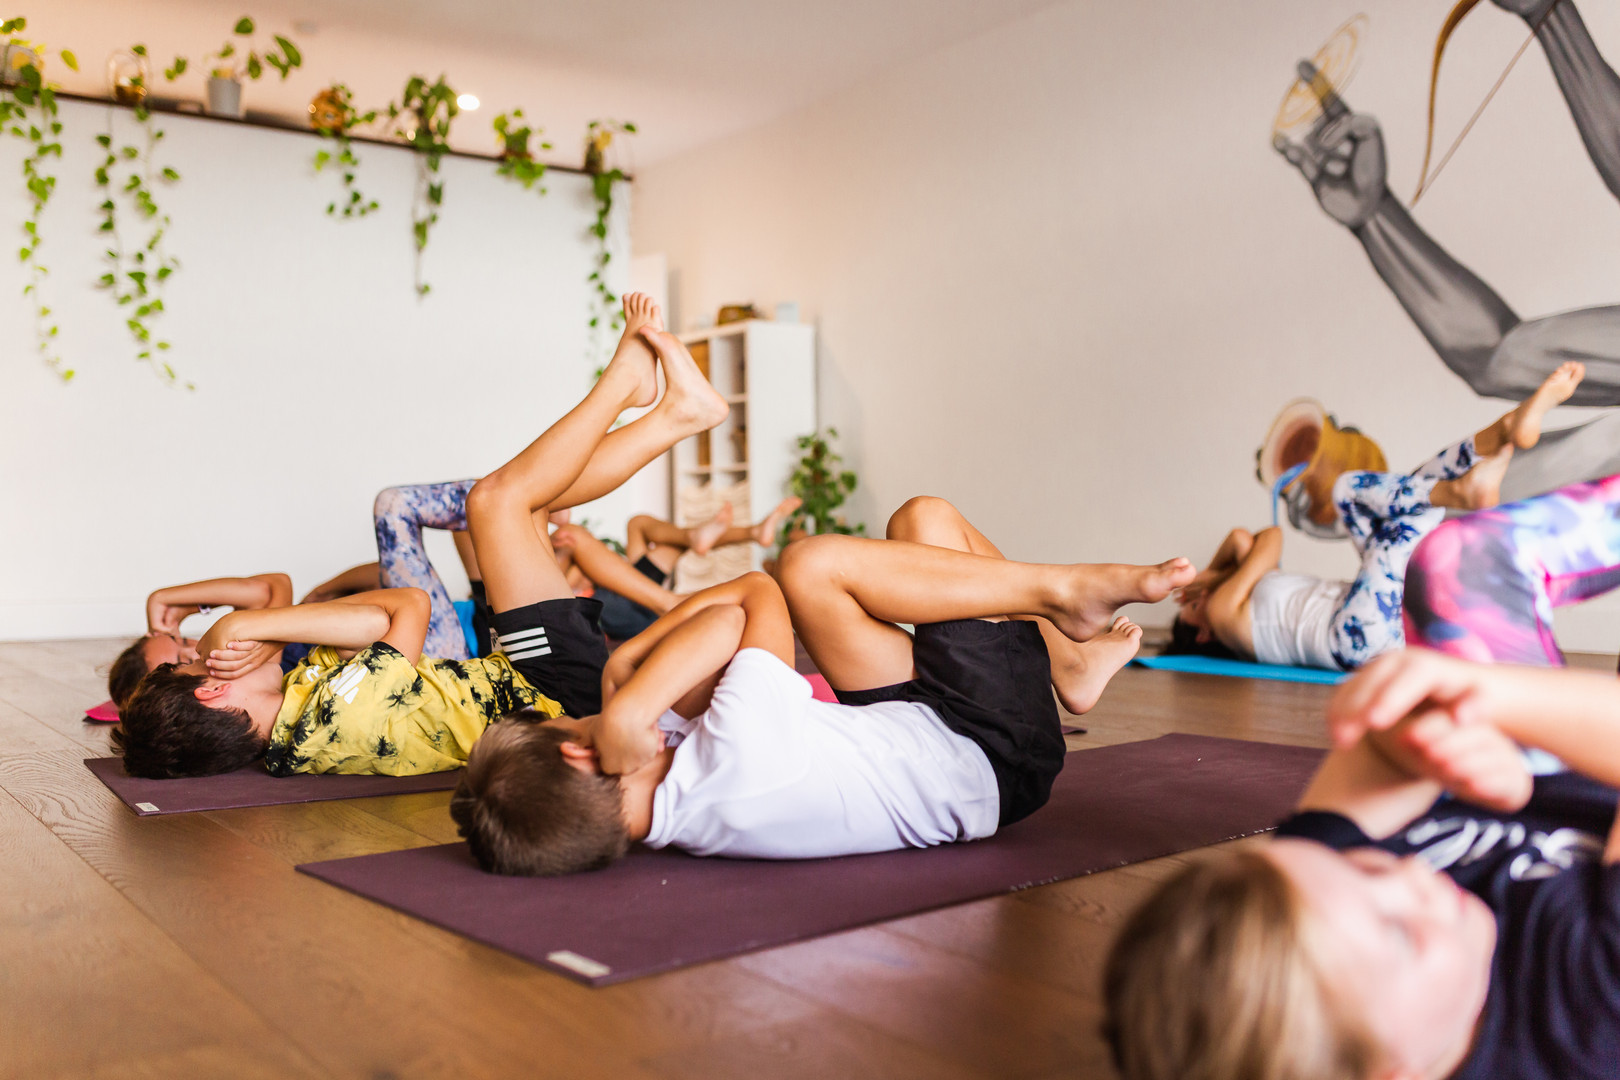 For the Folk Yoga and Wellness - Yoga for Kids